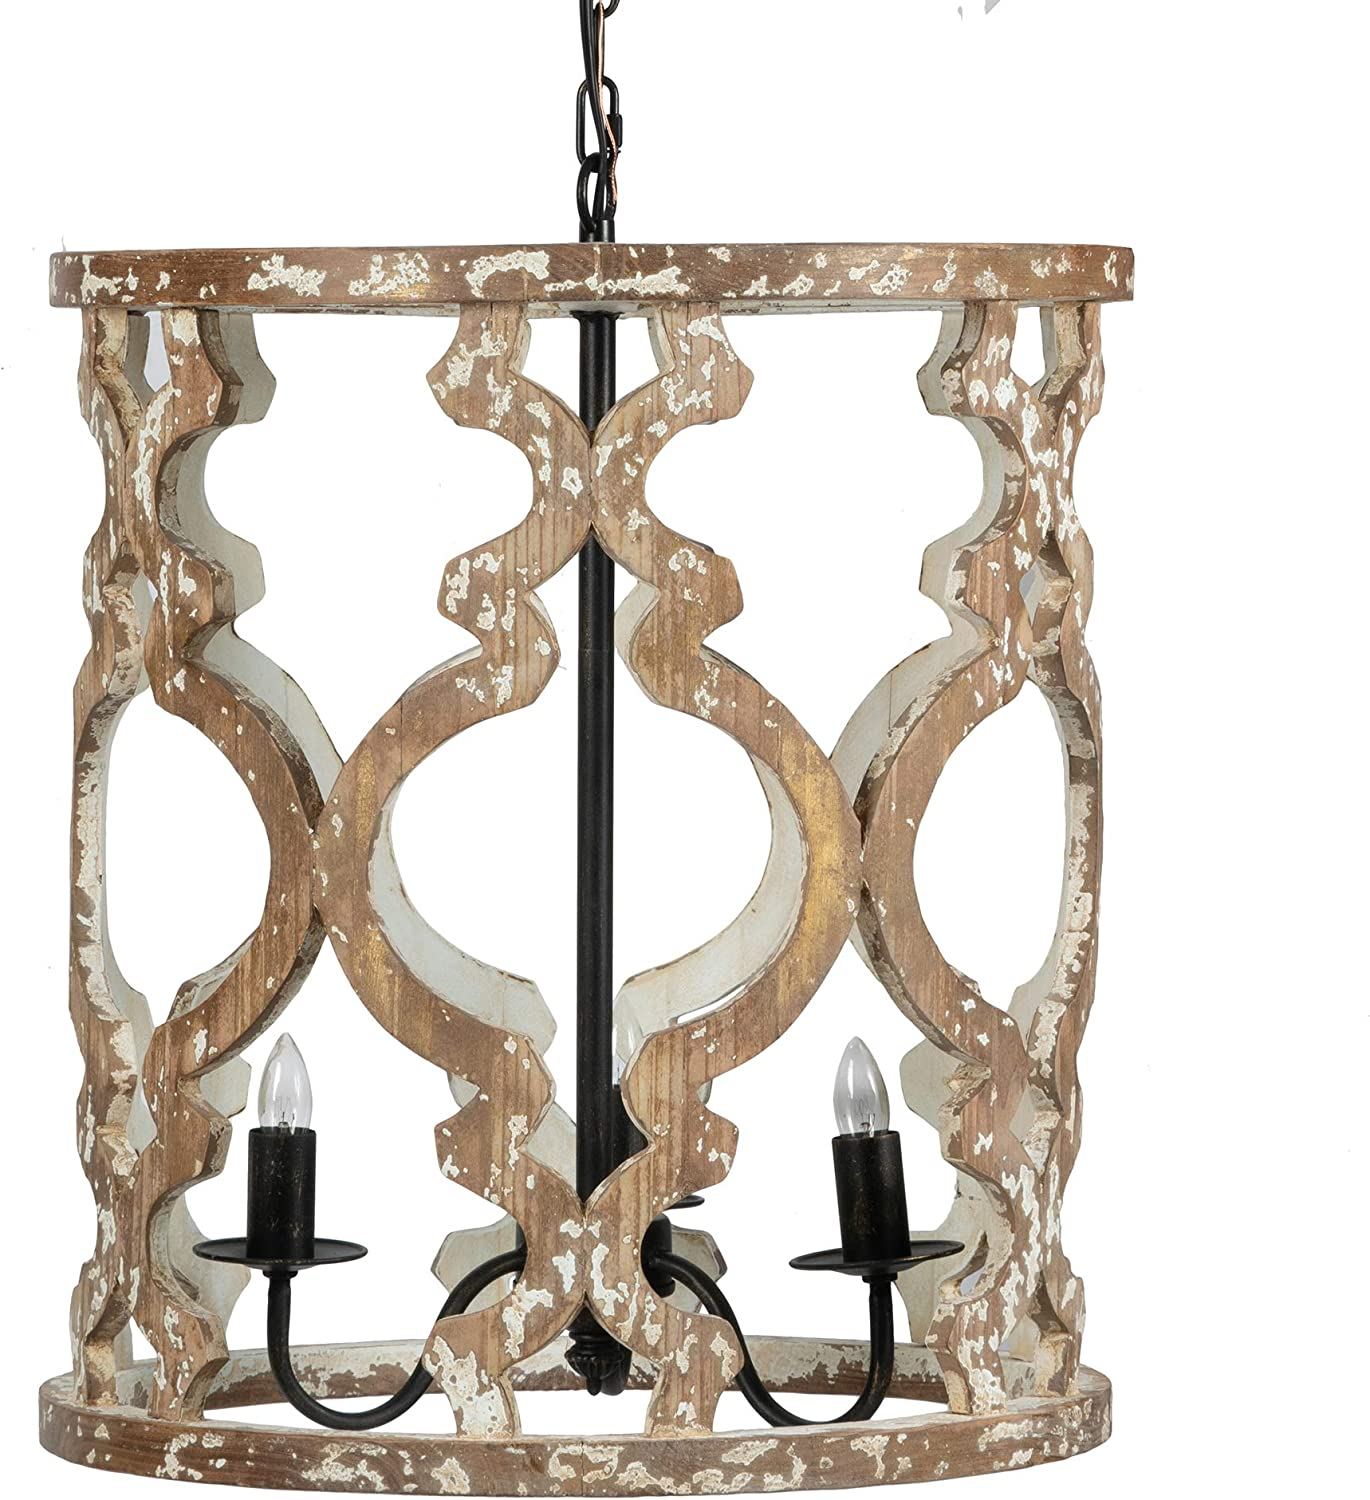 A&B Home Whitewashed Wood and Black Iron Chandeliers, Pendant, Multi